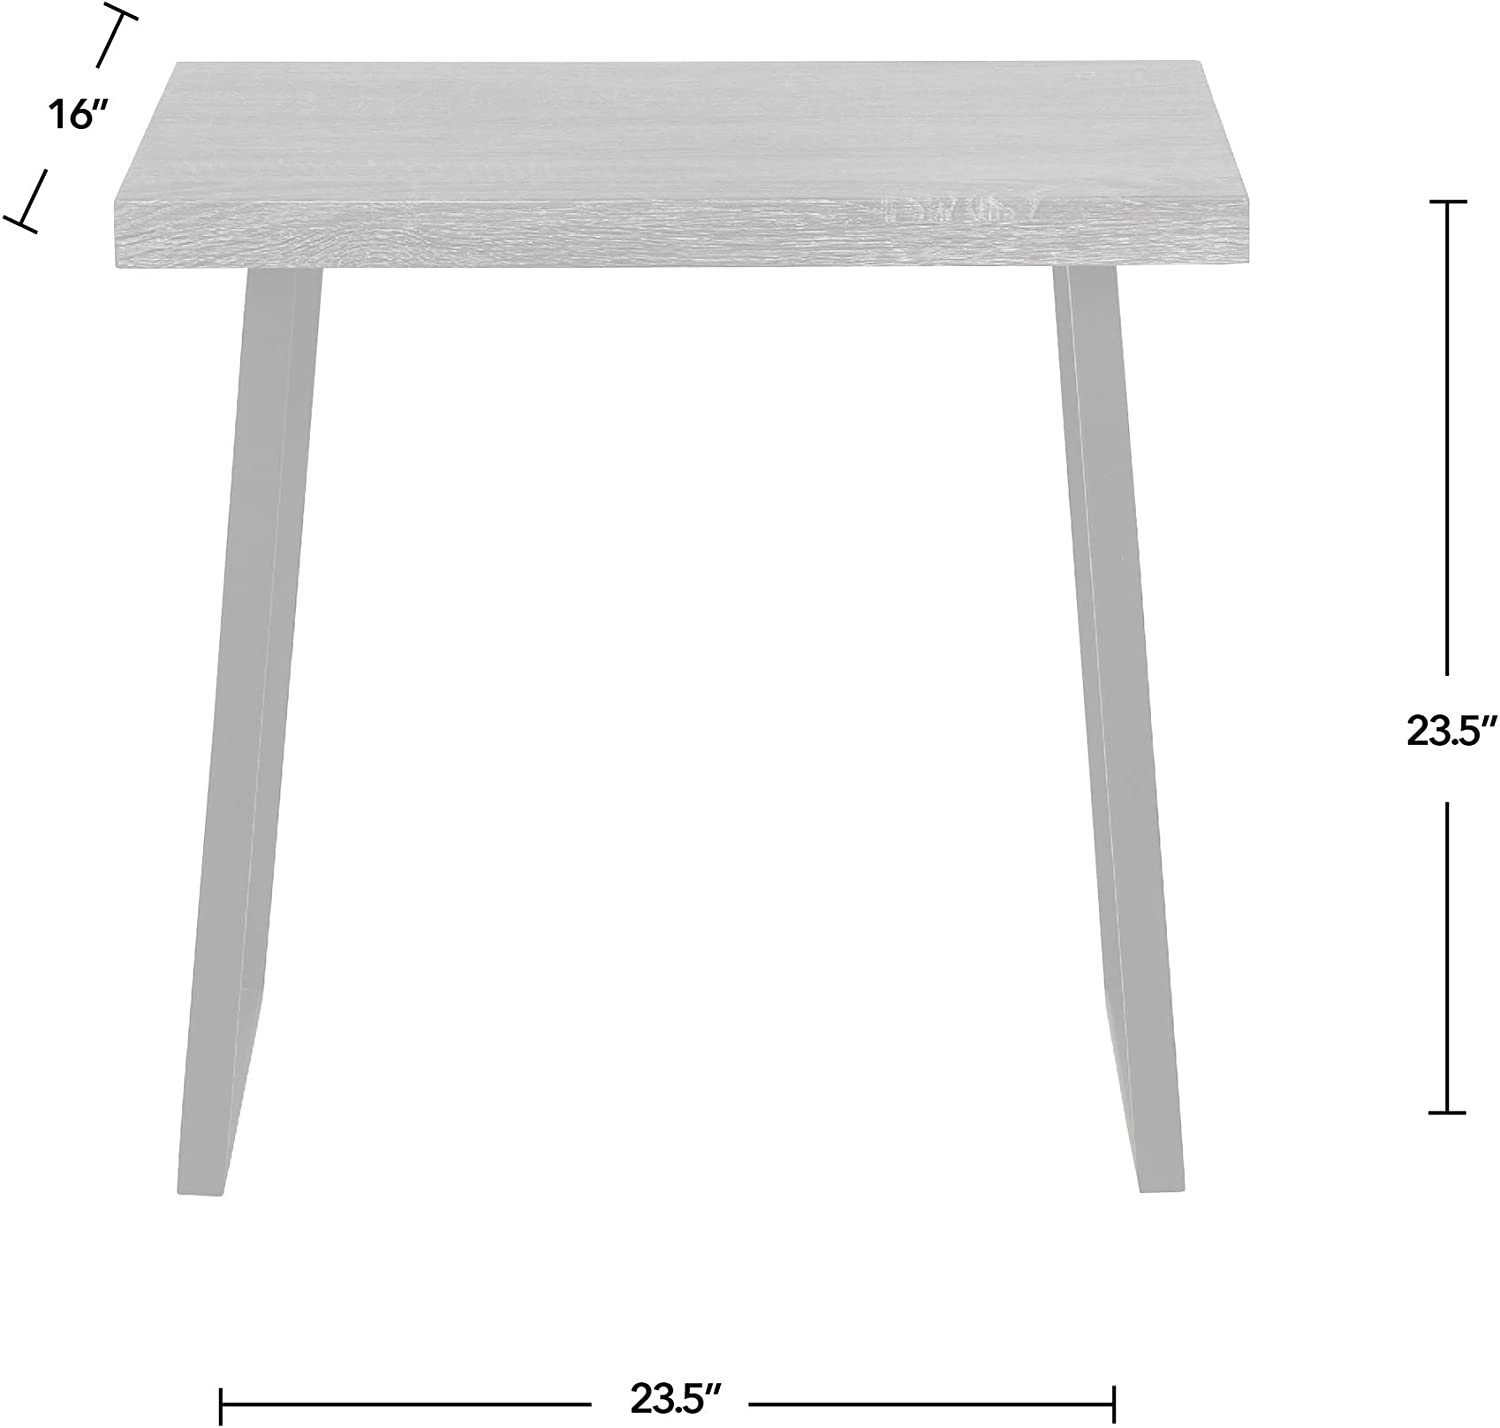 FirsTime & Co. Rhys End Table, American Crafted, Gray, 23.5 x 23.5 x 16, (70189), 23.5 inches